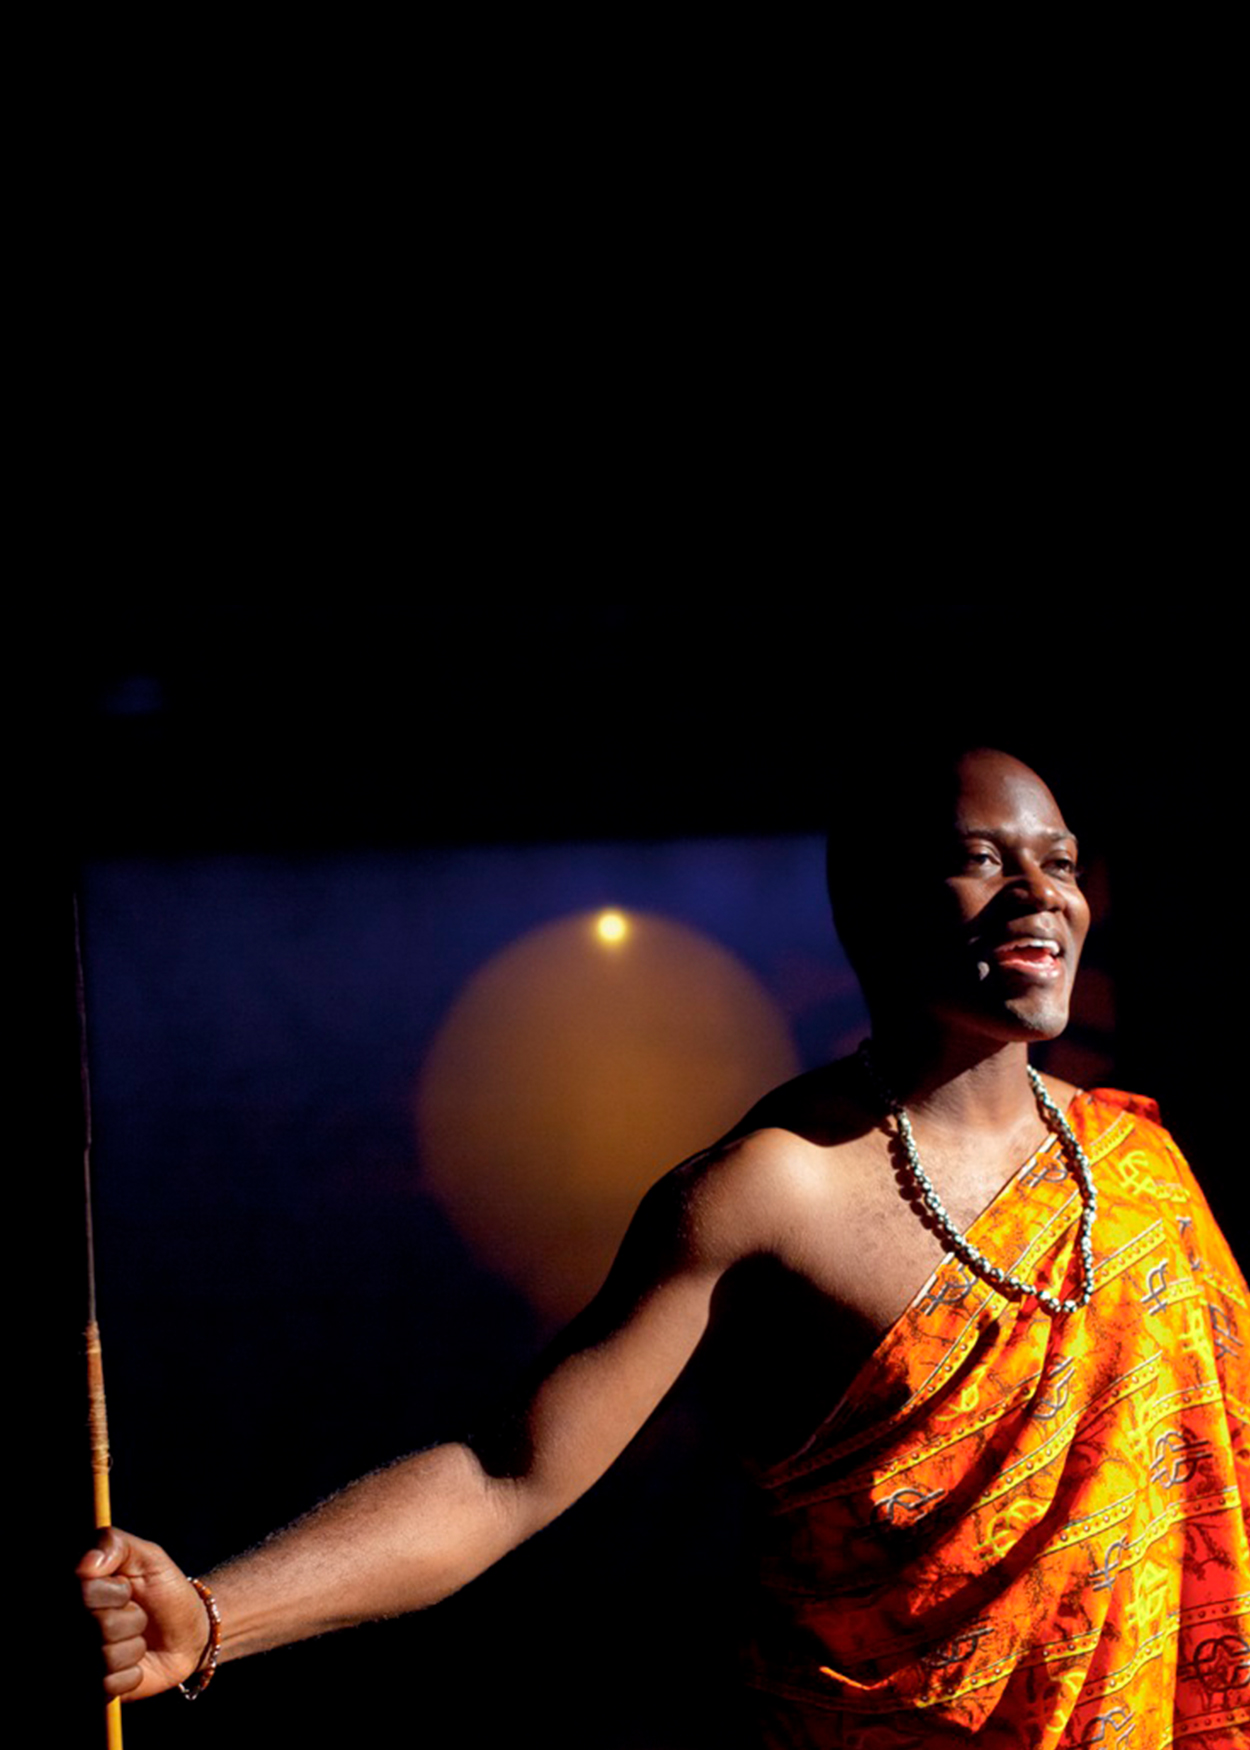 African American male wearing a bright yellow African sarong arms open